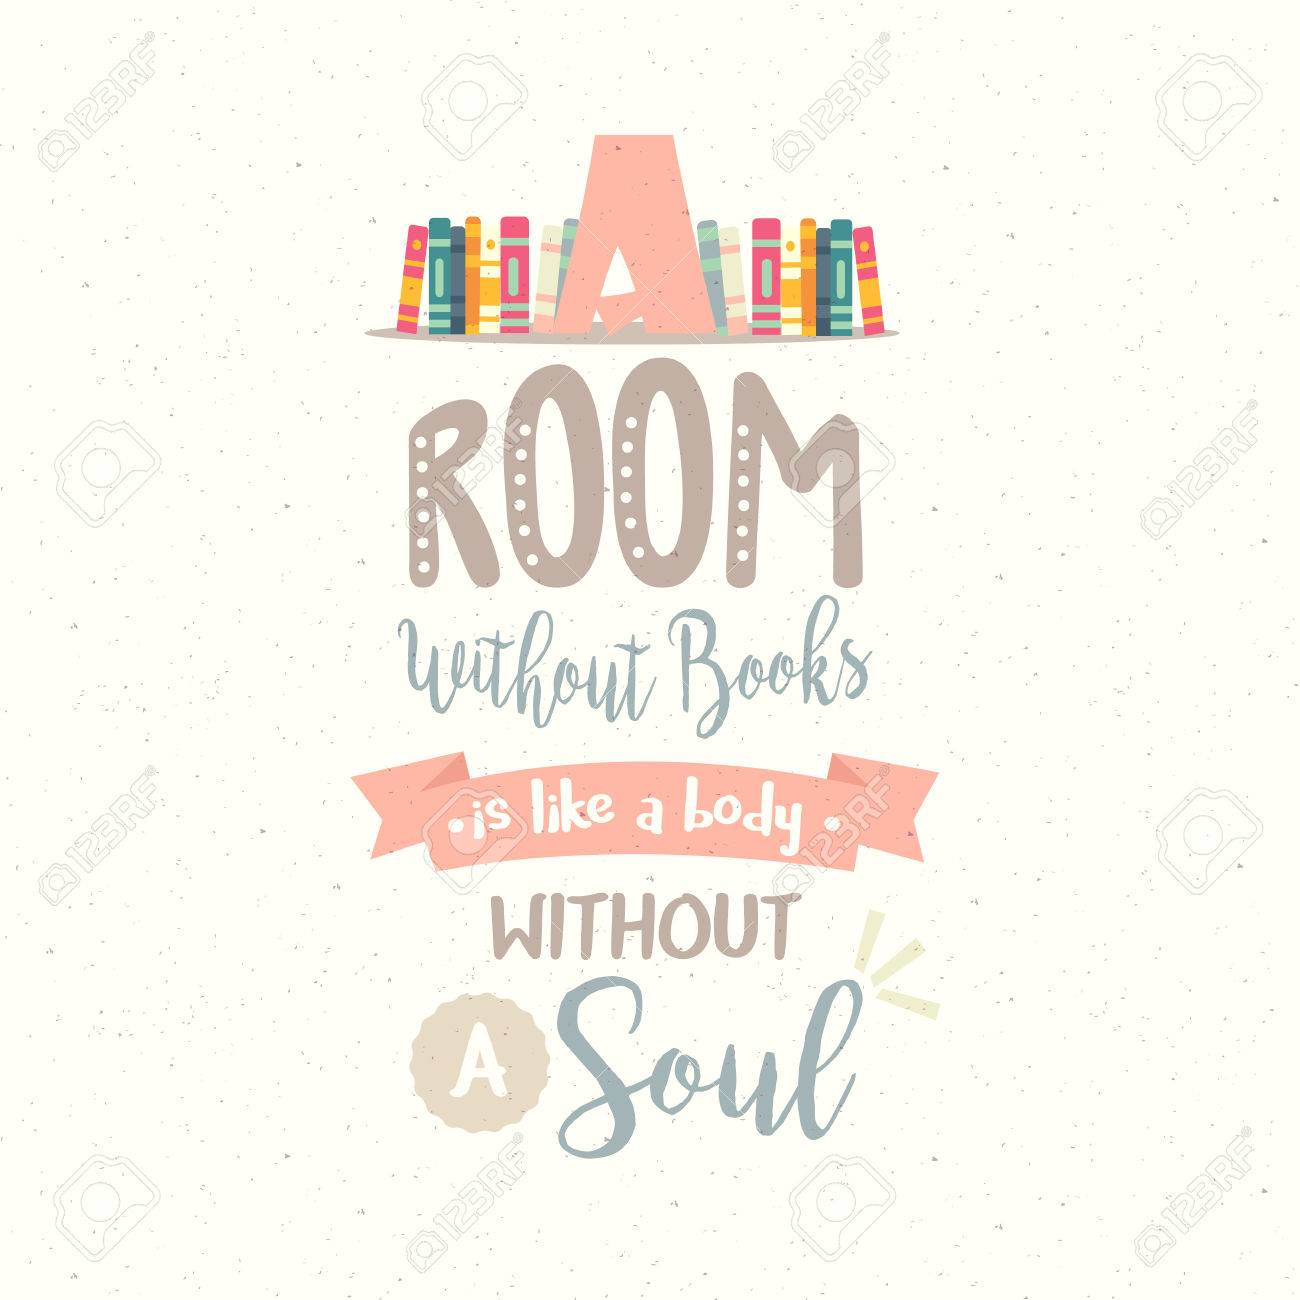 Reading Quotes A Room Without Book Body Without Soul Vector Quotes Reading  Reading Quotes